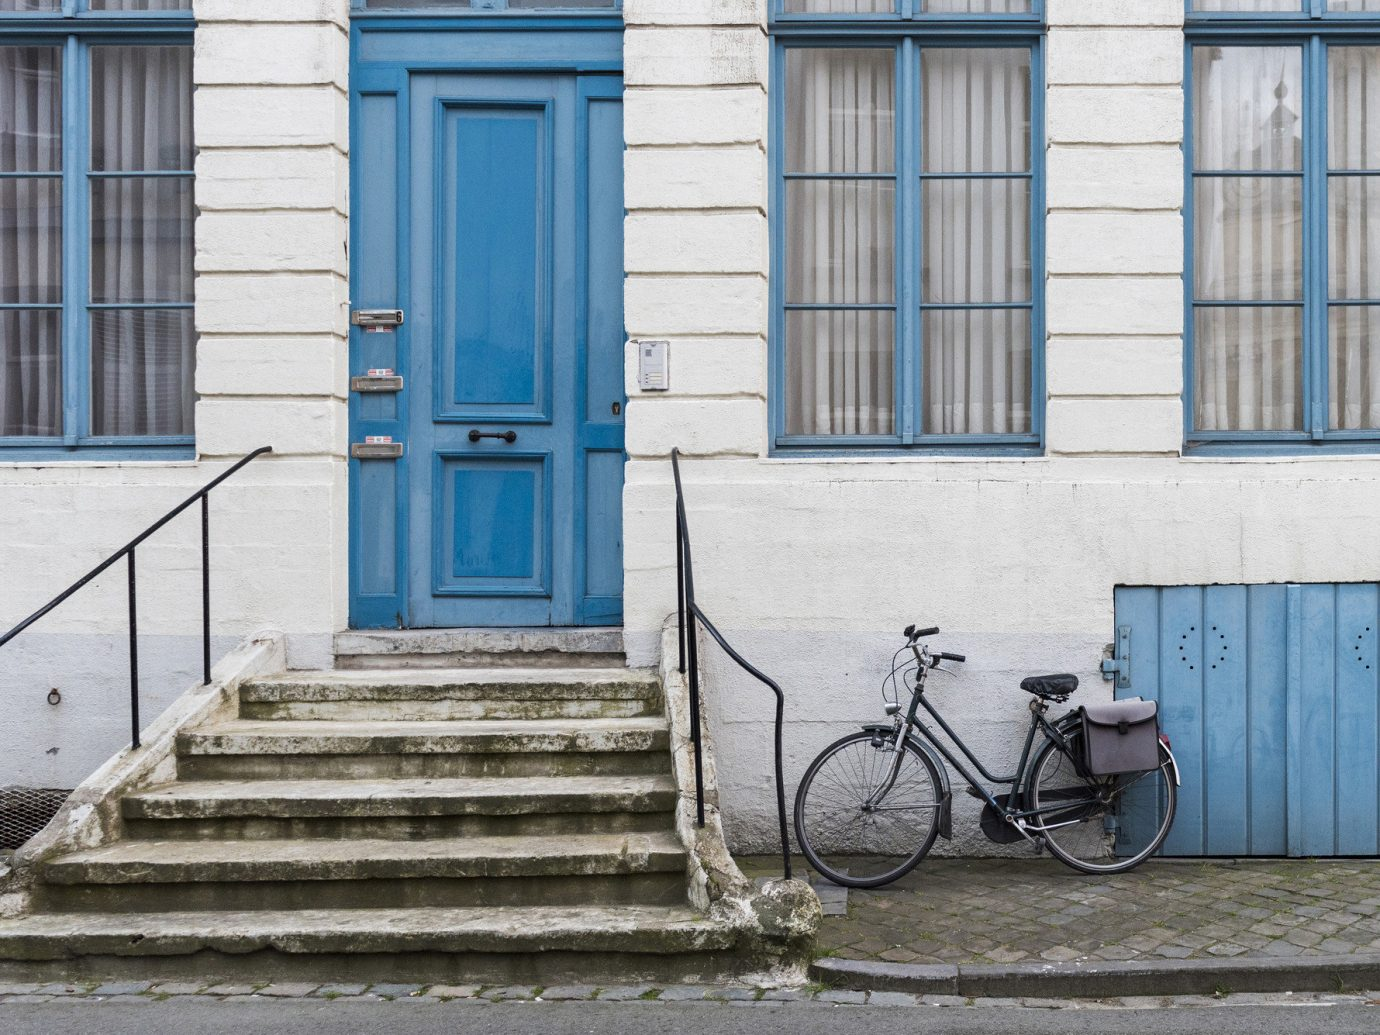 Trip Ideas building outdoor bicycle blue road house urban area wall sidewalk street Architecture home facade window wood infrastructure parked door cottage cement stone concrete